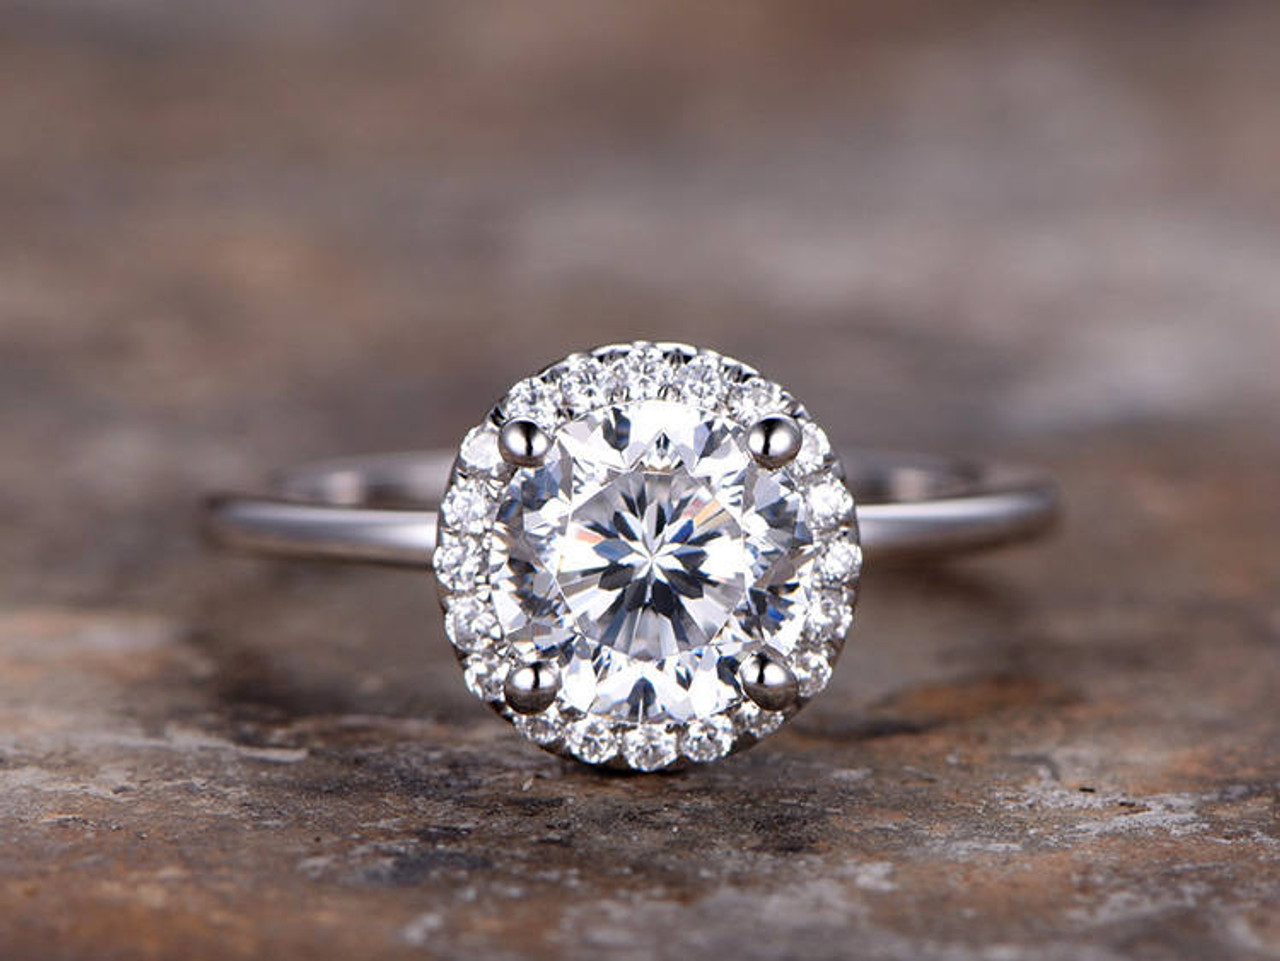 6mm Round Moissanite Engagement Ring For Women 18K White Gold Plated Silver 925